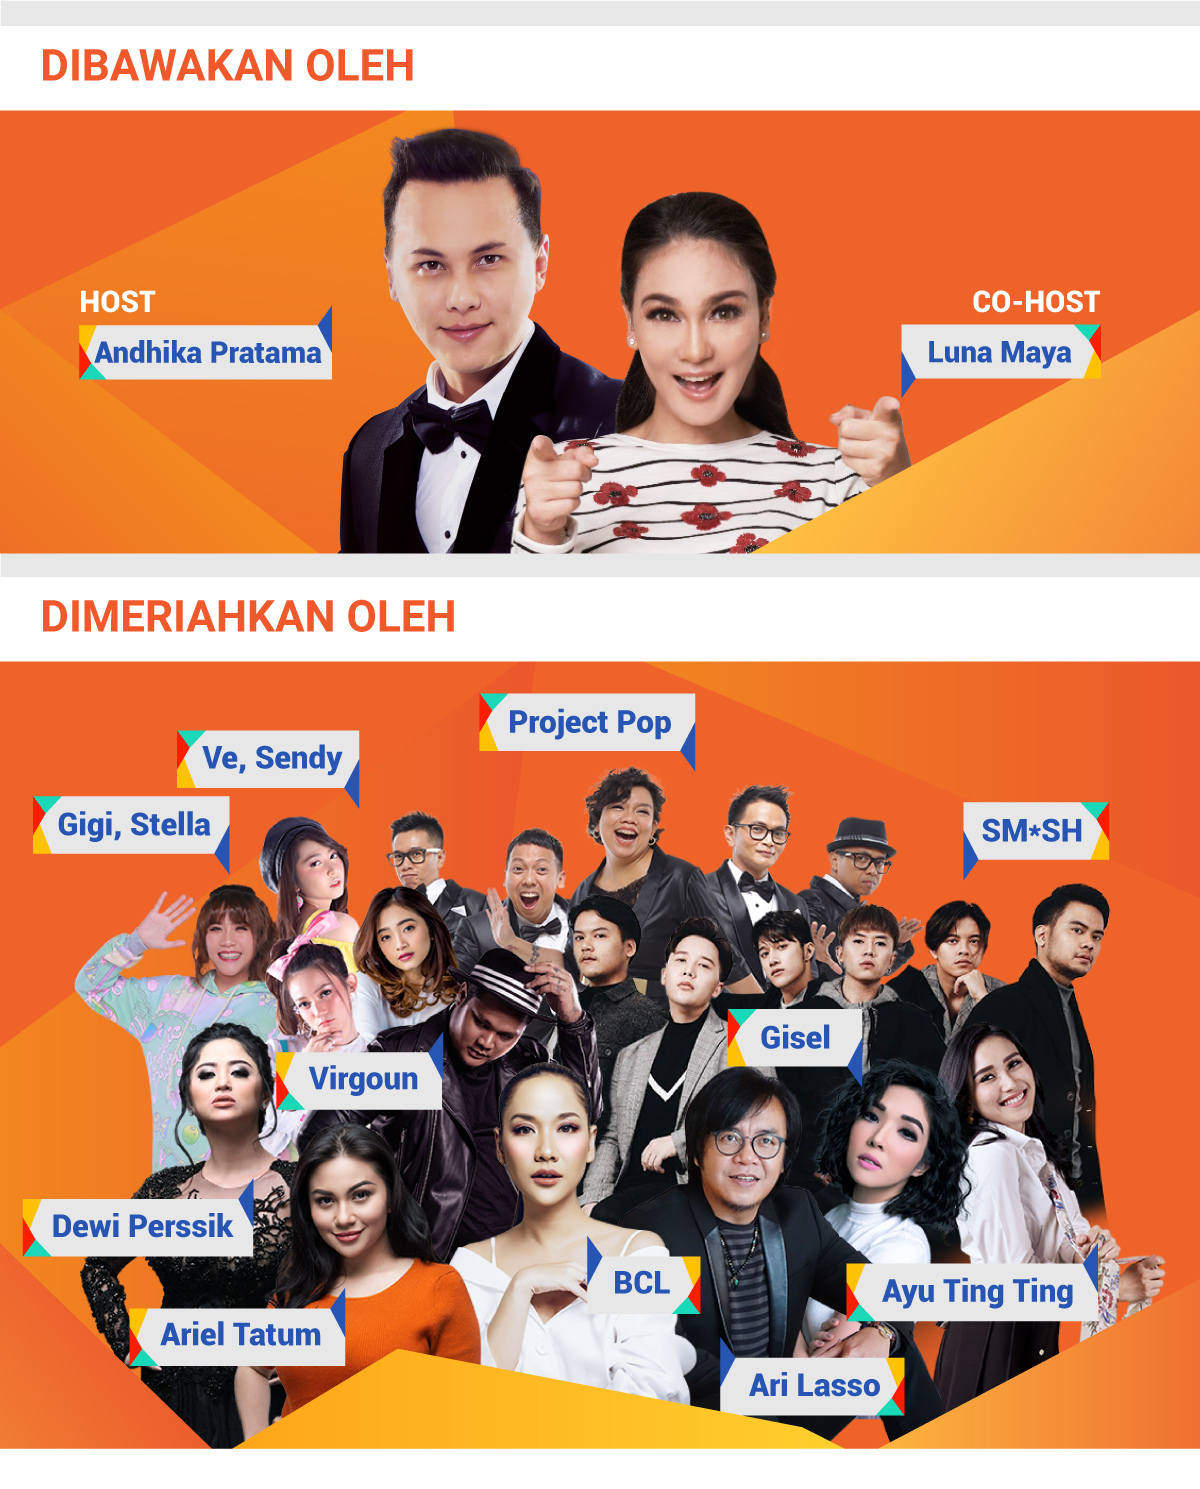 Live Streaming Sctv: Sedang Berlangsung Live Streaming Shopee 12.12 Birthday